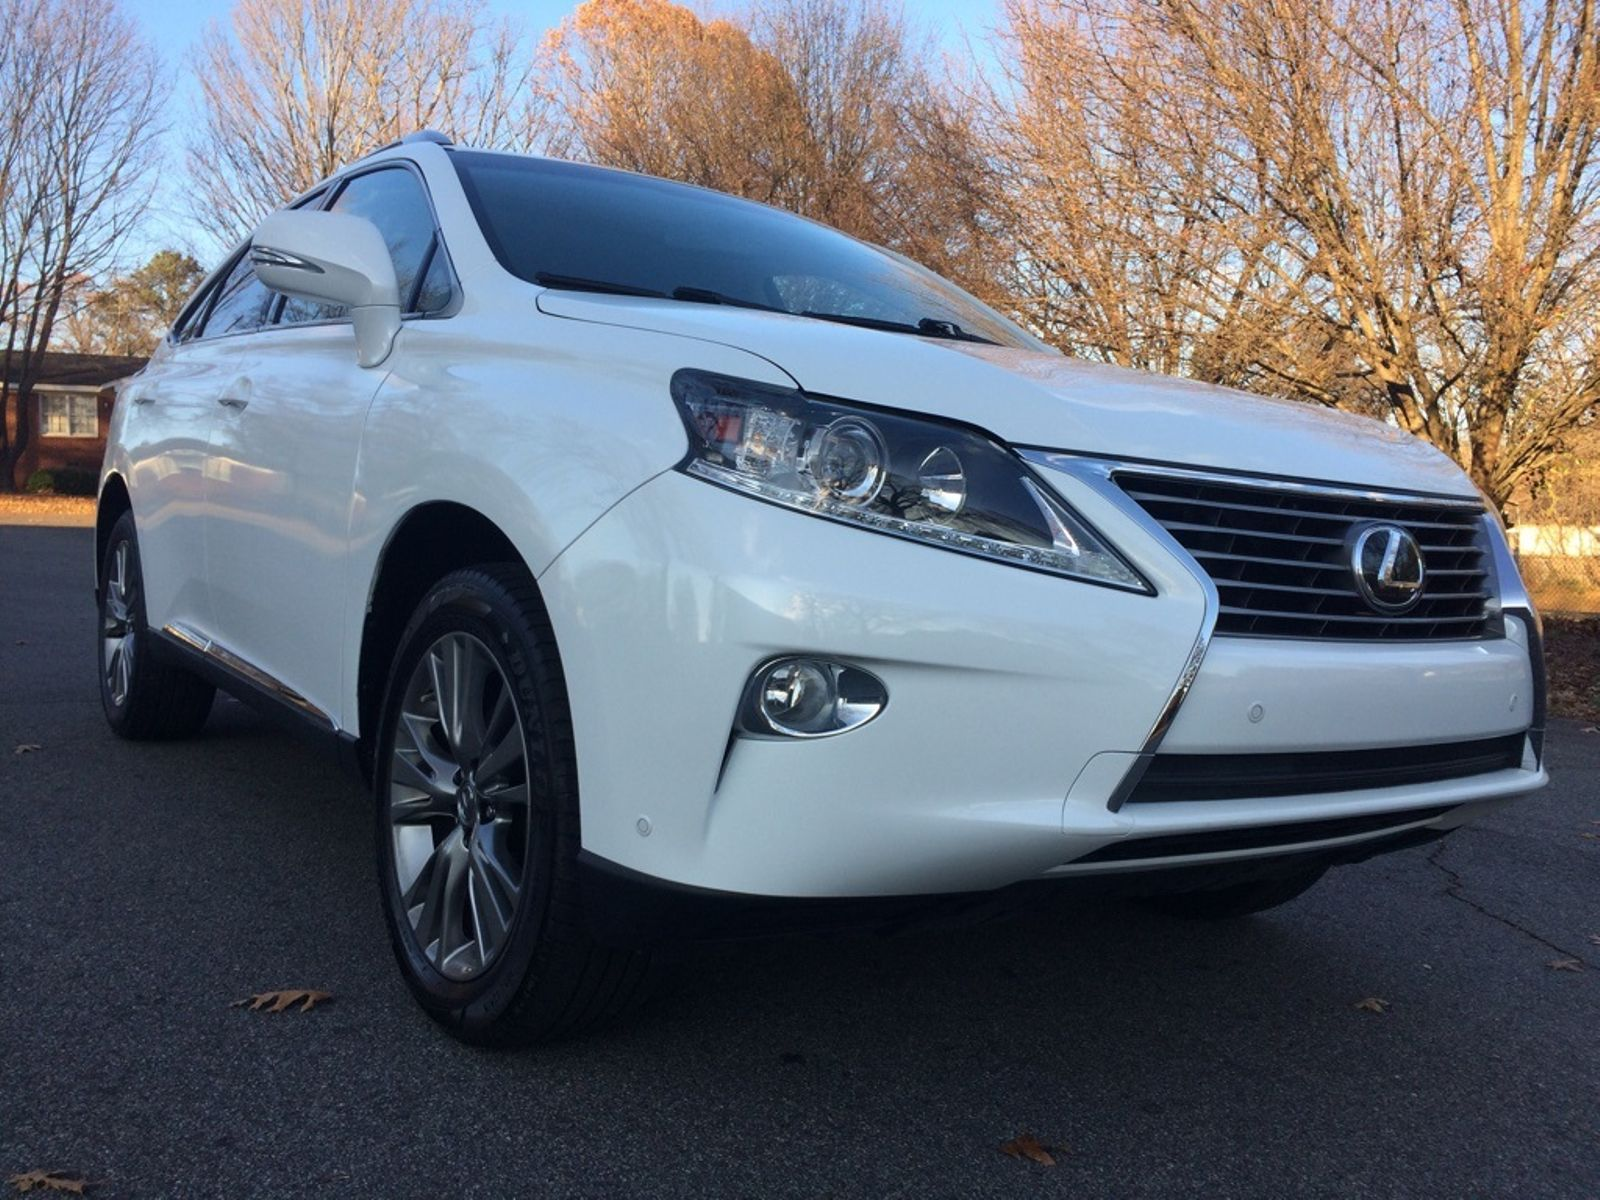 cheshire doors macclesfield car for f in cvt sale used auto rx estate sport lexus